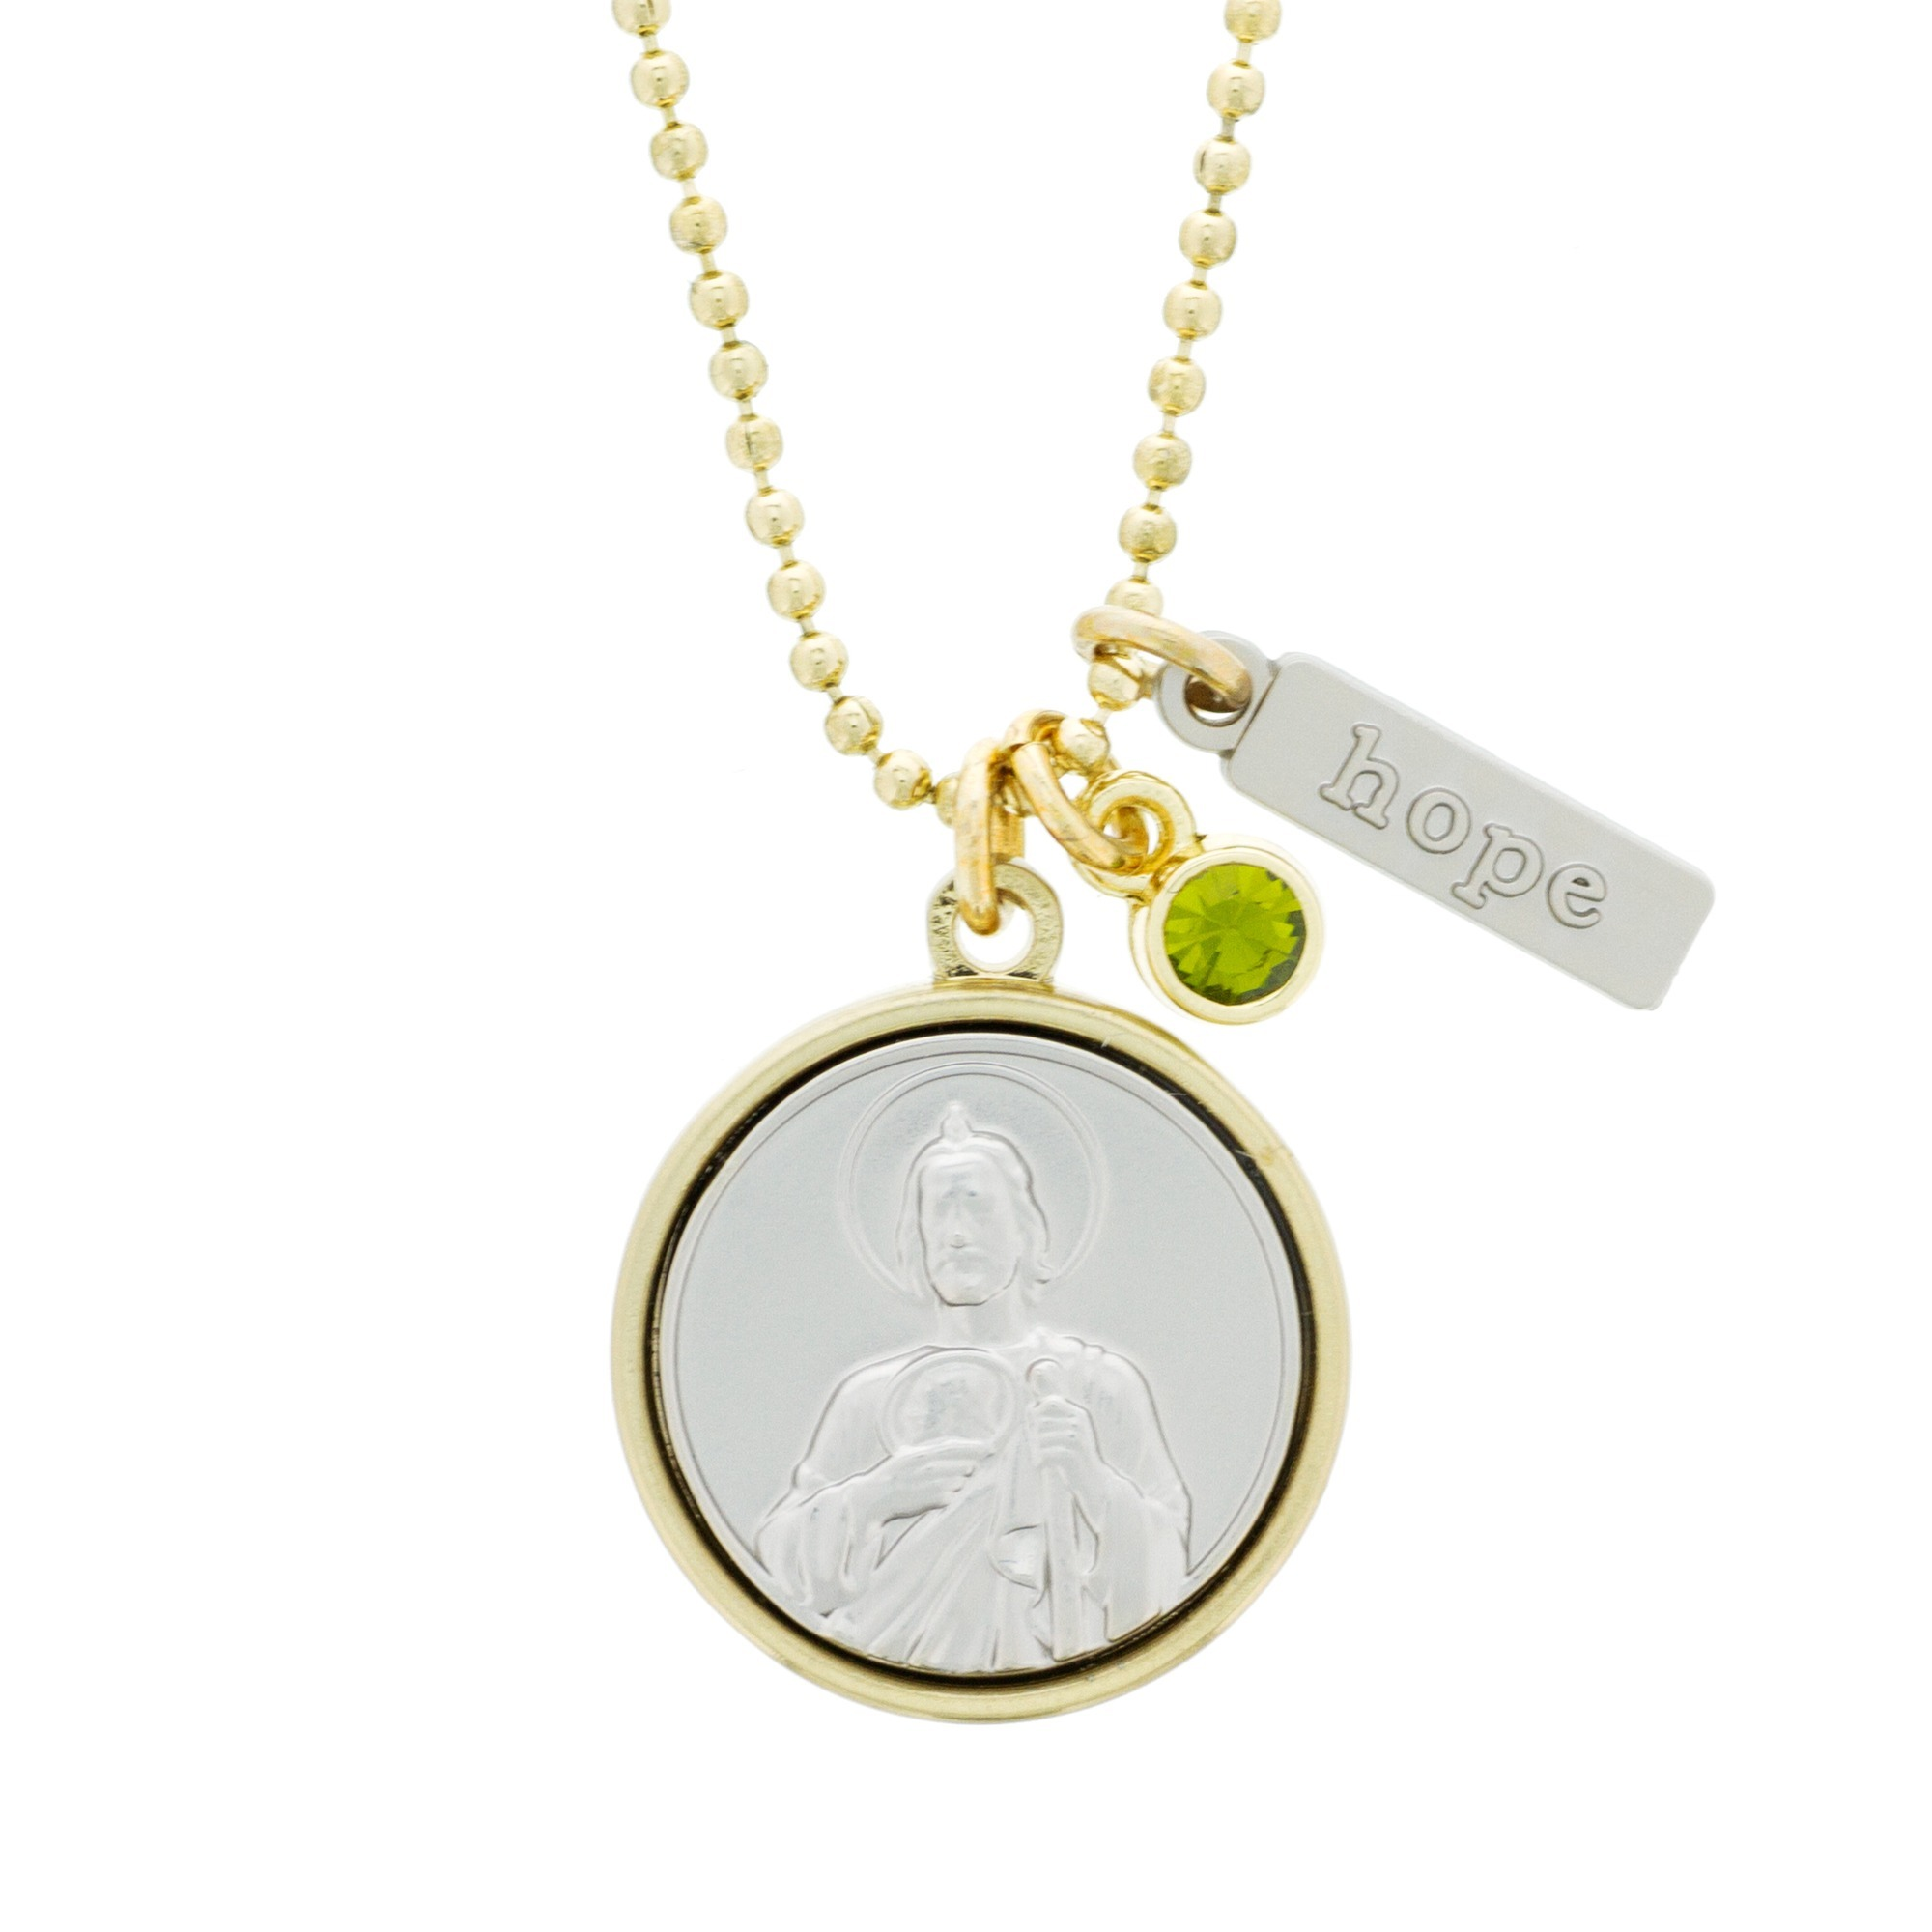 pendant without saint conceived mary vintage au listing catholic zoom il sin medallion fullxfull medal